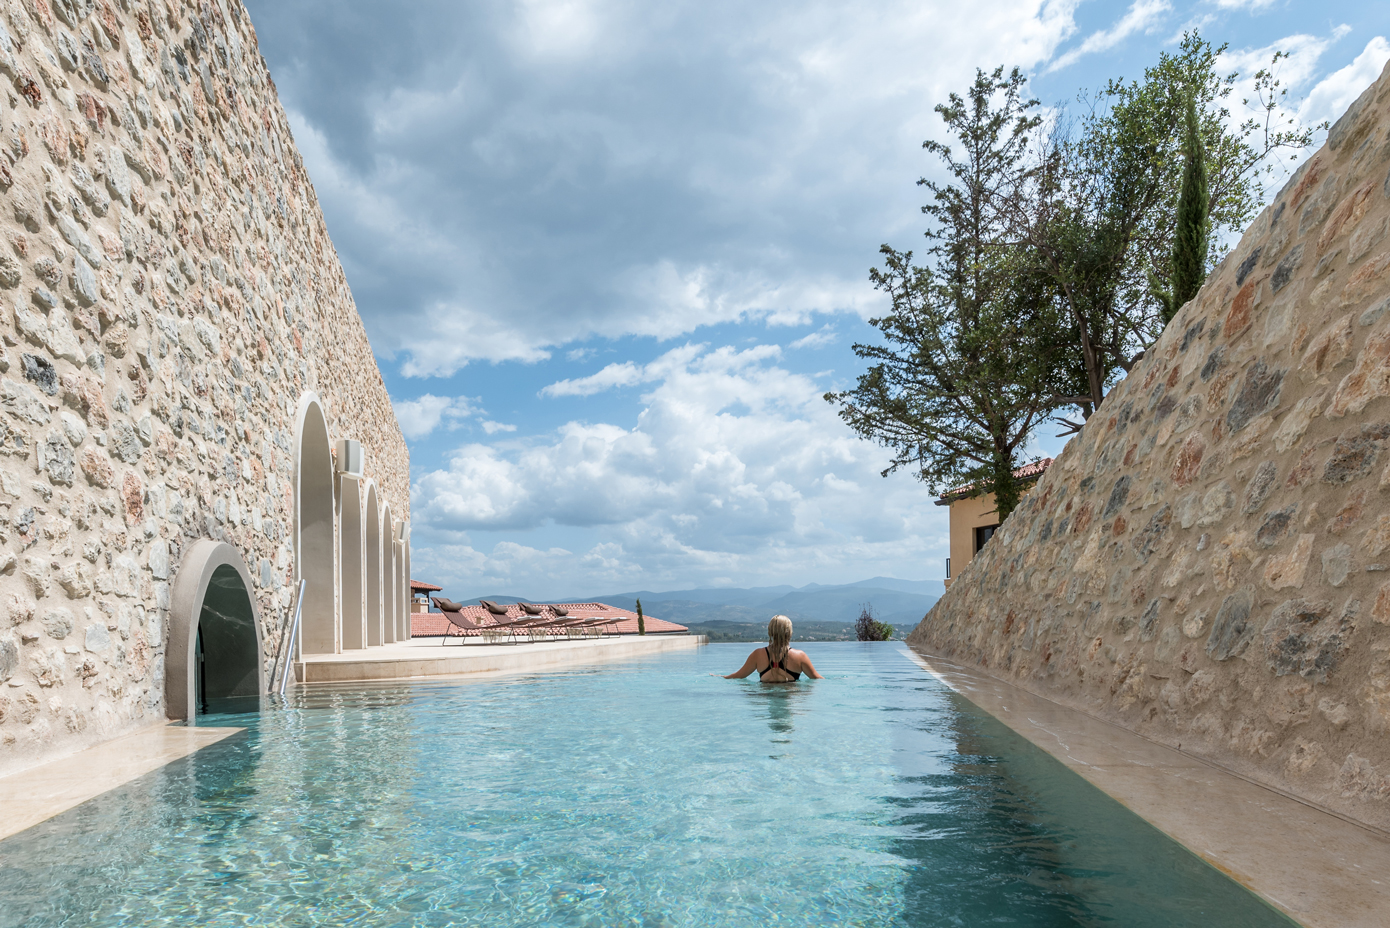 Add This Spa Retreat in Greece to Your Post-Pandemic Travel List